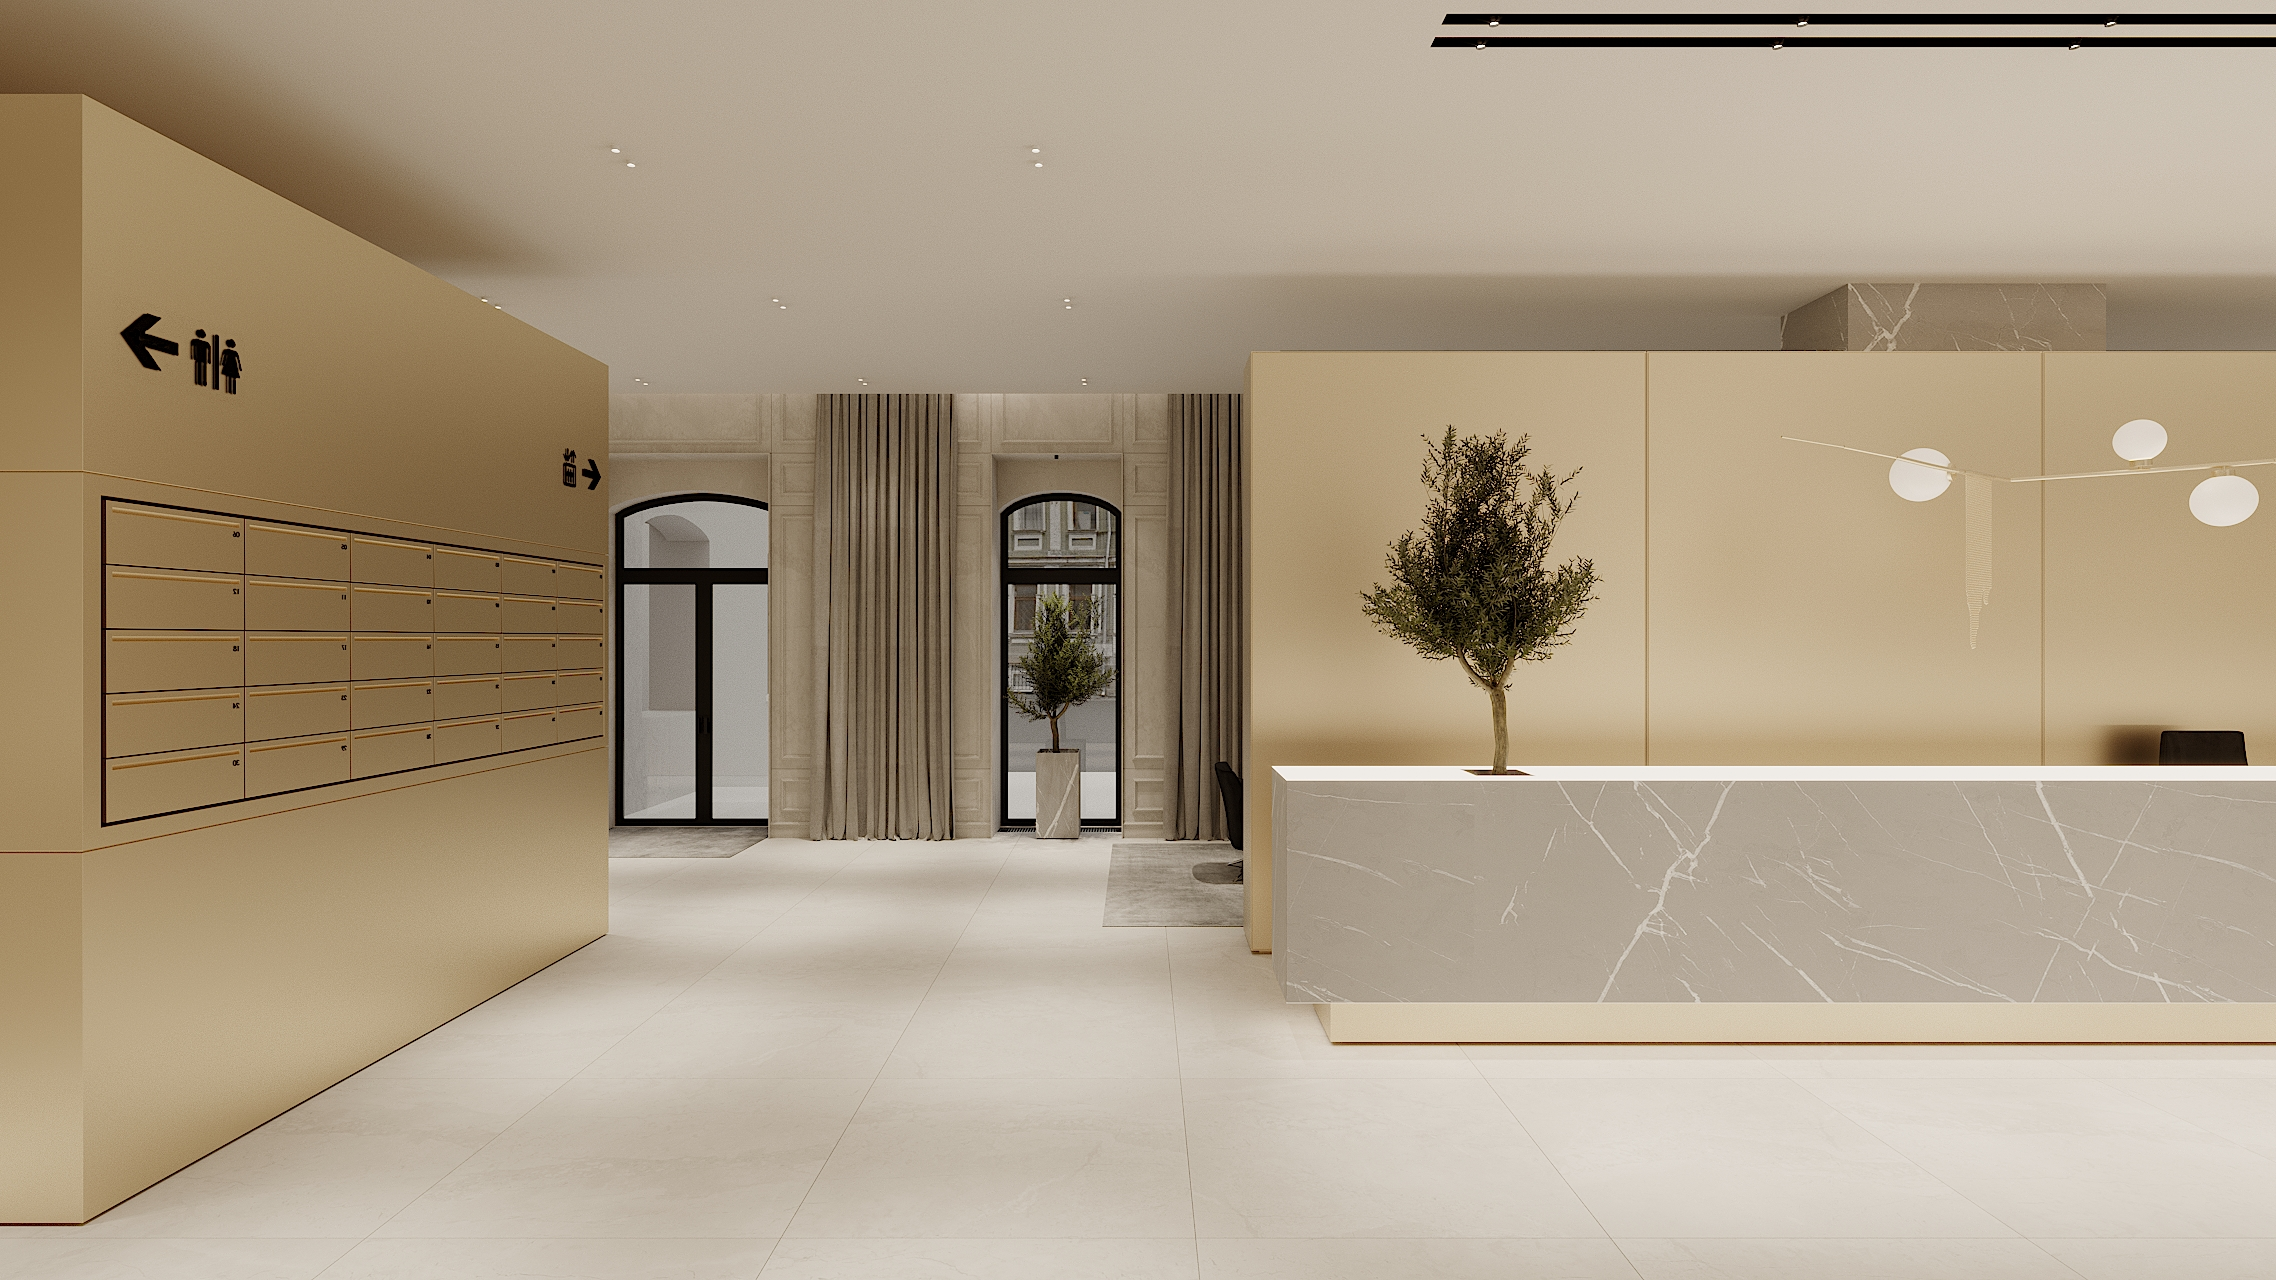 RESIDENTIAL BUILDING HALL 1 concept 1_7